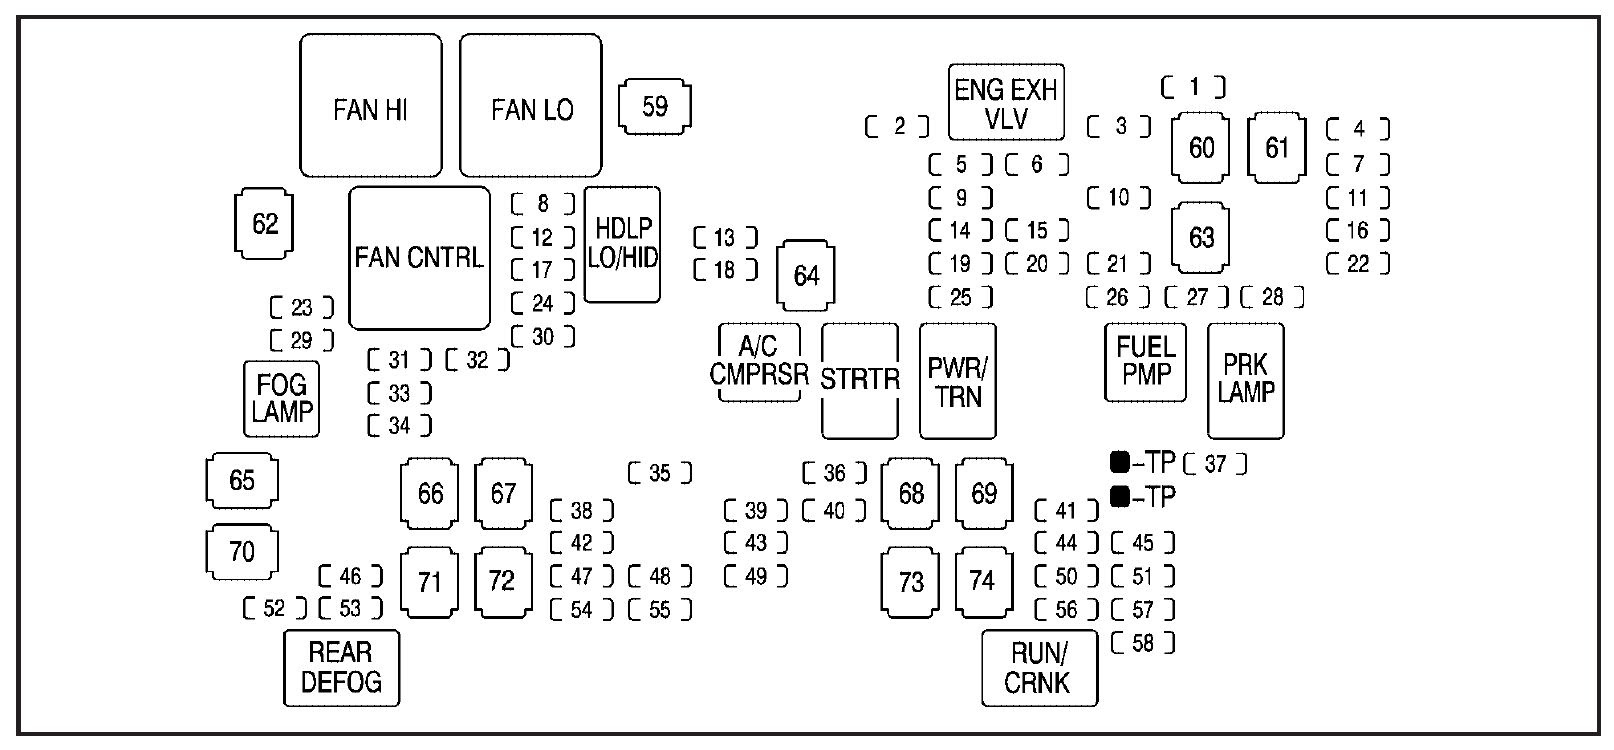 [DIAGRAM] 2004 Gmc Envoy Xl Fuse Box Location FULL Version